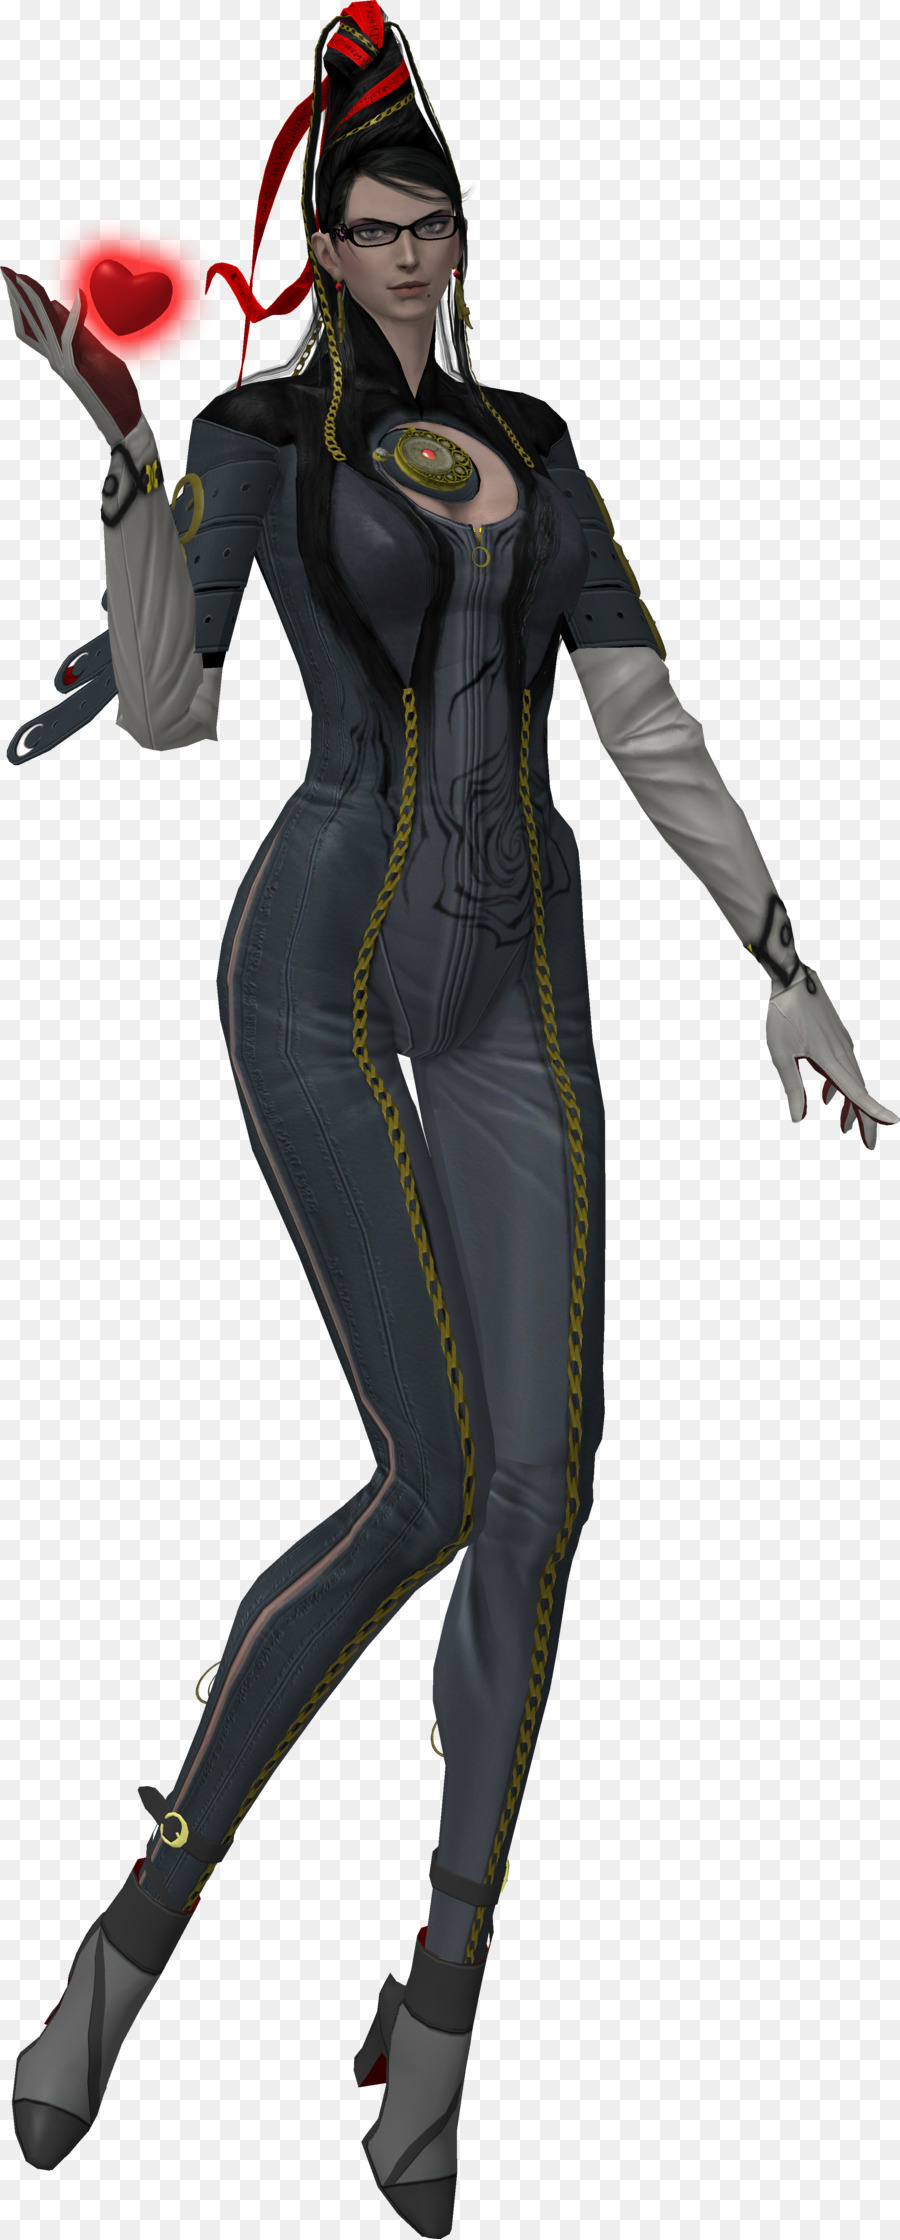 Alice Wetsuit Png Download 2466 6136 Free Transparent Alice